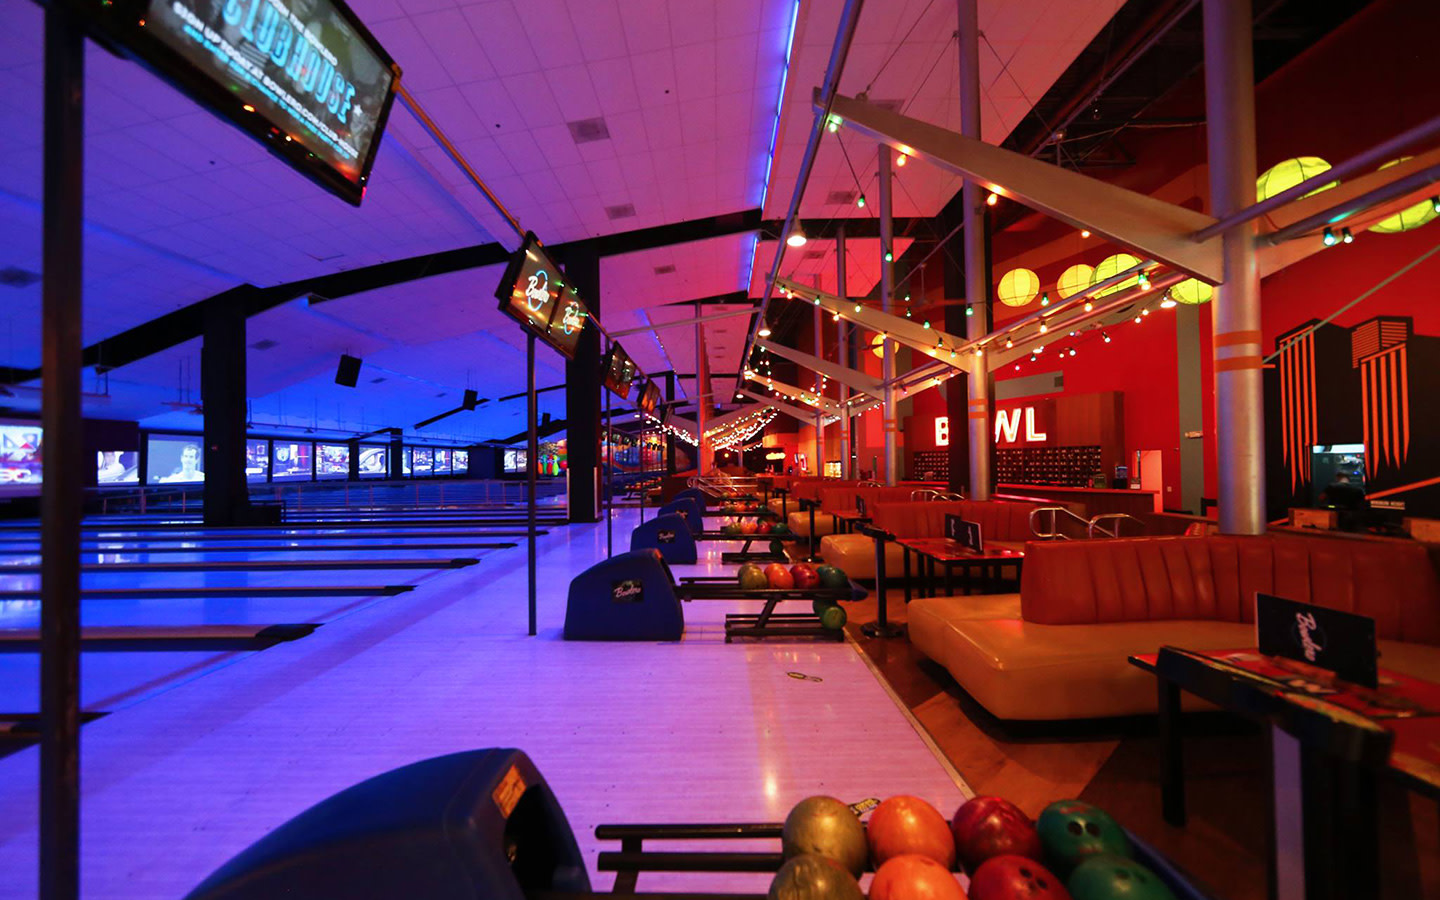 Discover your new favorite place to bowl